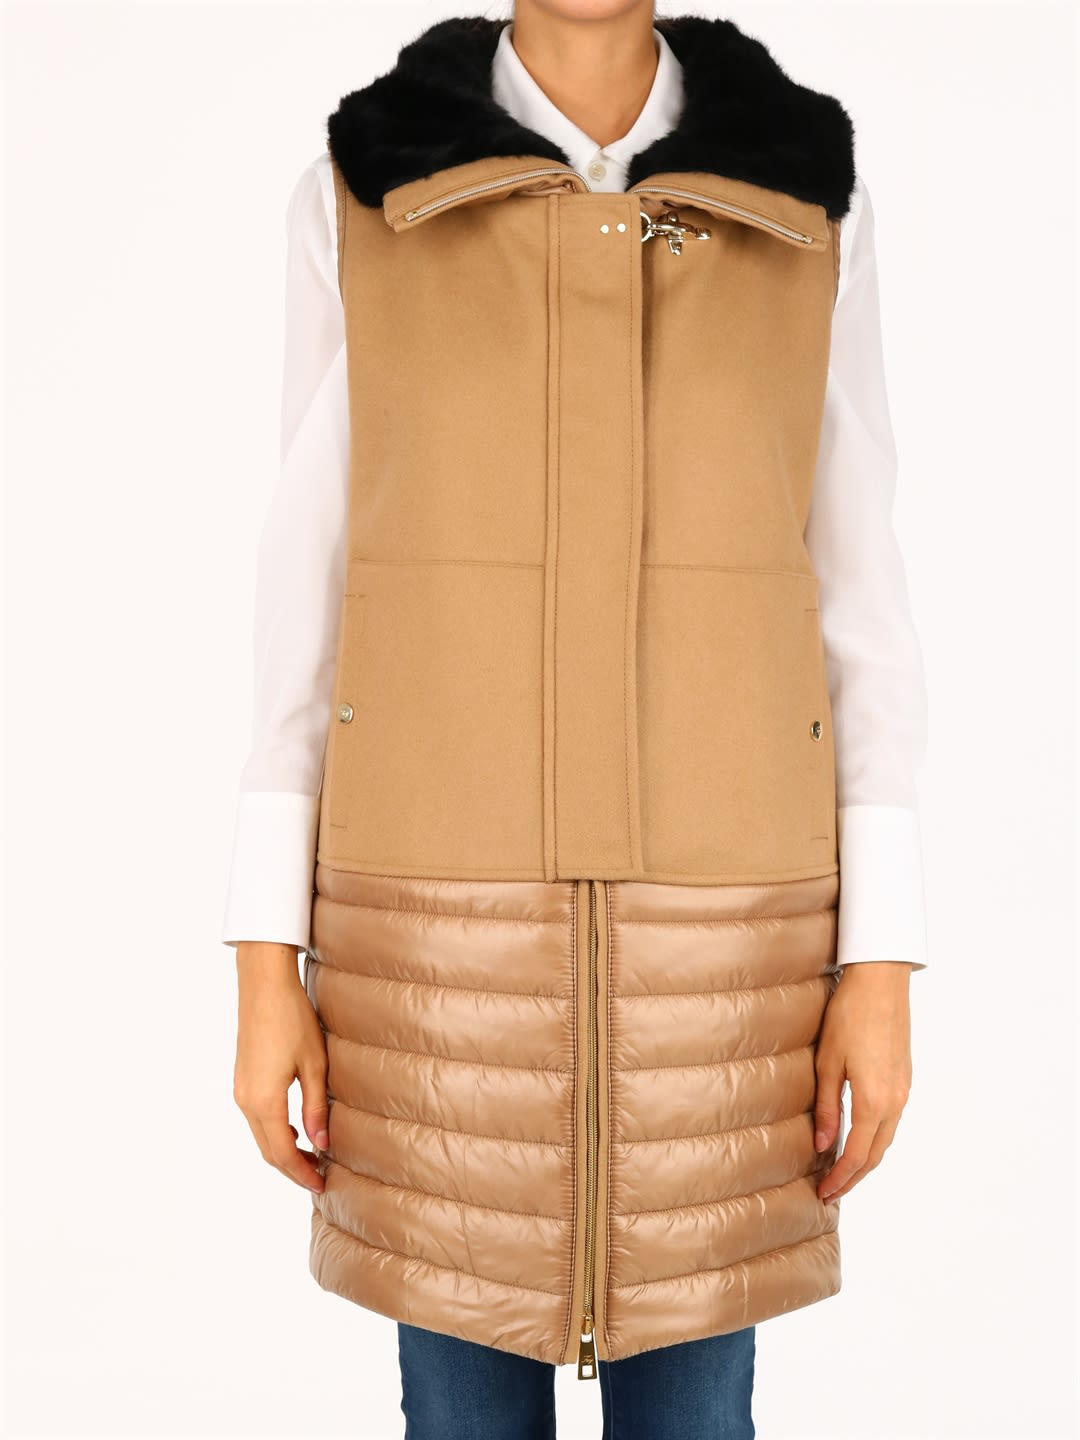 Vest with top in cloth and bottom in quilted nylon. Featuring a wraparound high collar with faux fur insert, it has a zip closure and hidden snaps, perfected by the iconic Fay hook. The model is 1. 70 cm tall and wears size SComposition: 50% Polyamide, 50% Virgin Wool